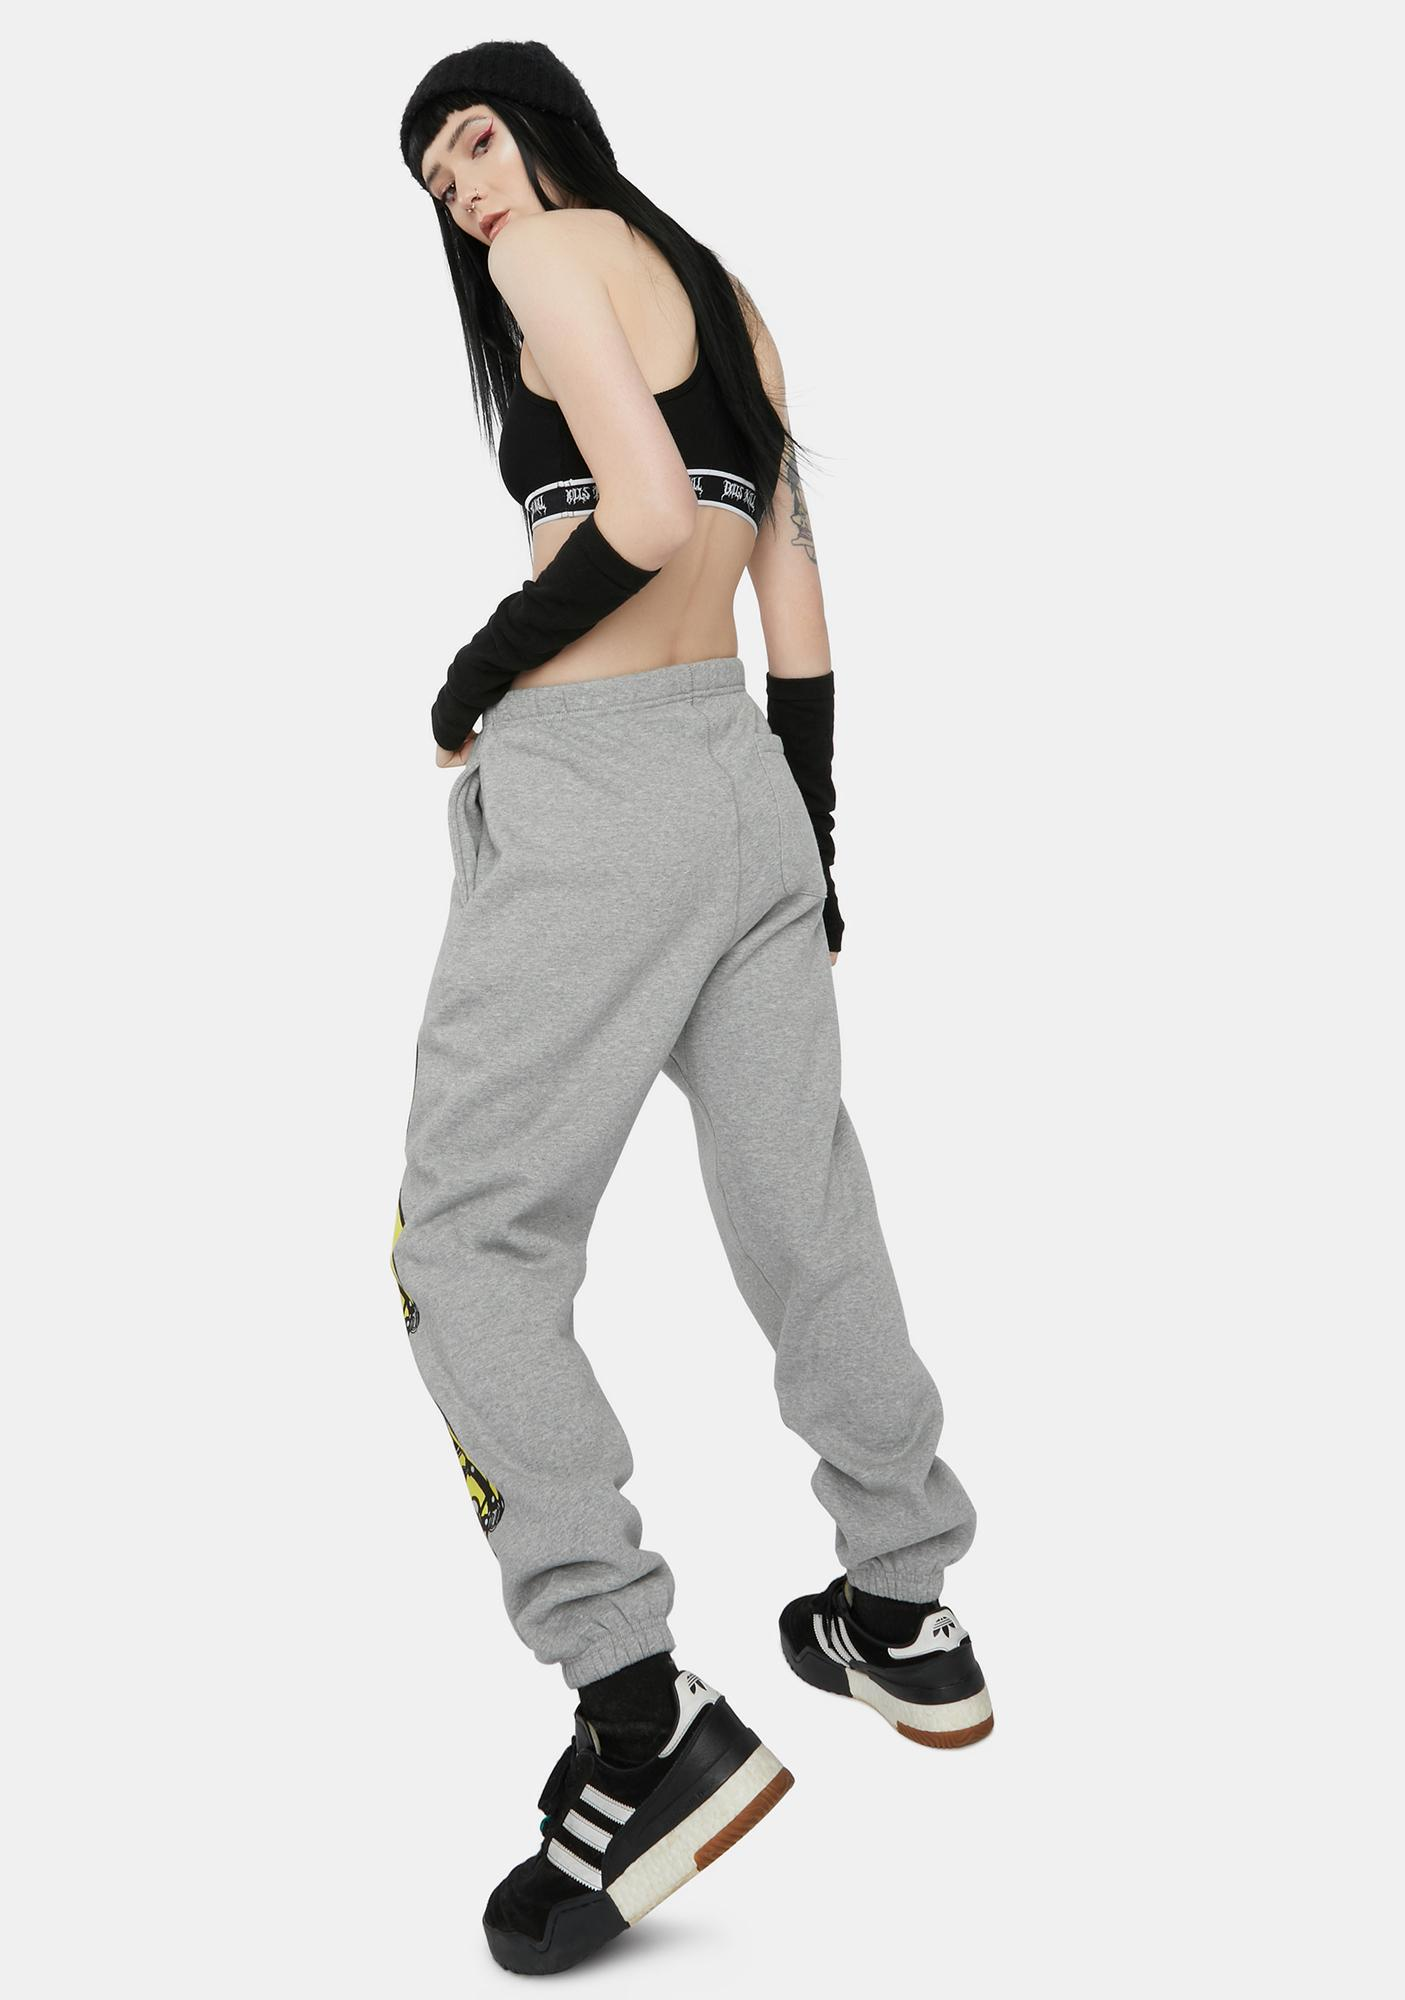 CHINATOWN MARKET Gray Smiley Ball Gag Sweatpants